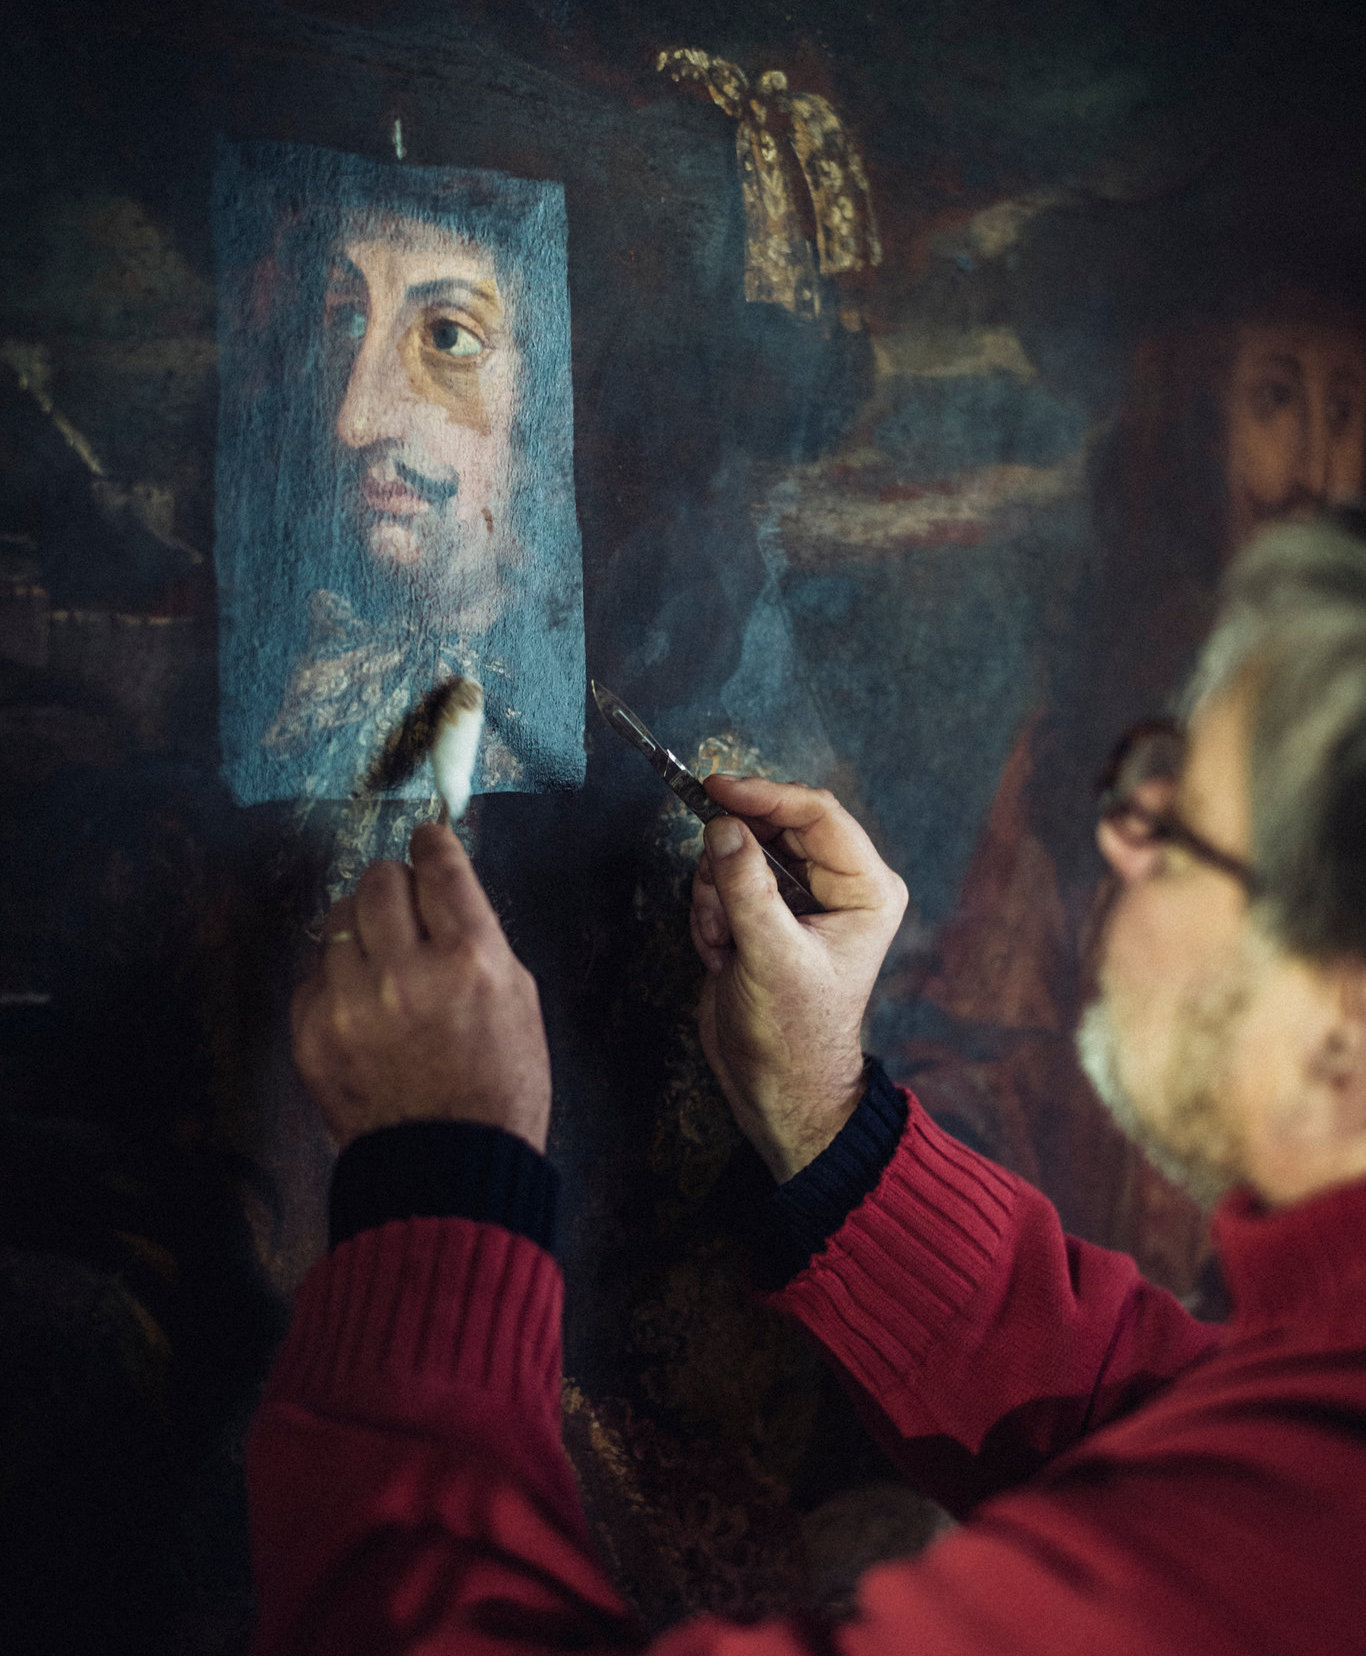 The restorer TK at work. Photo: © Julien Mignot for The New York Times